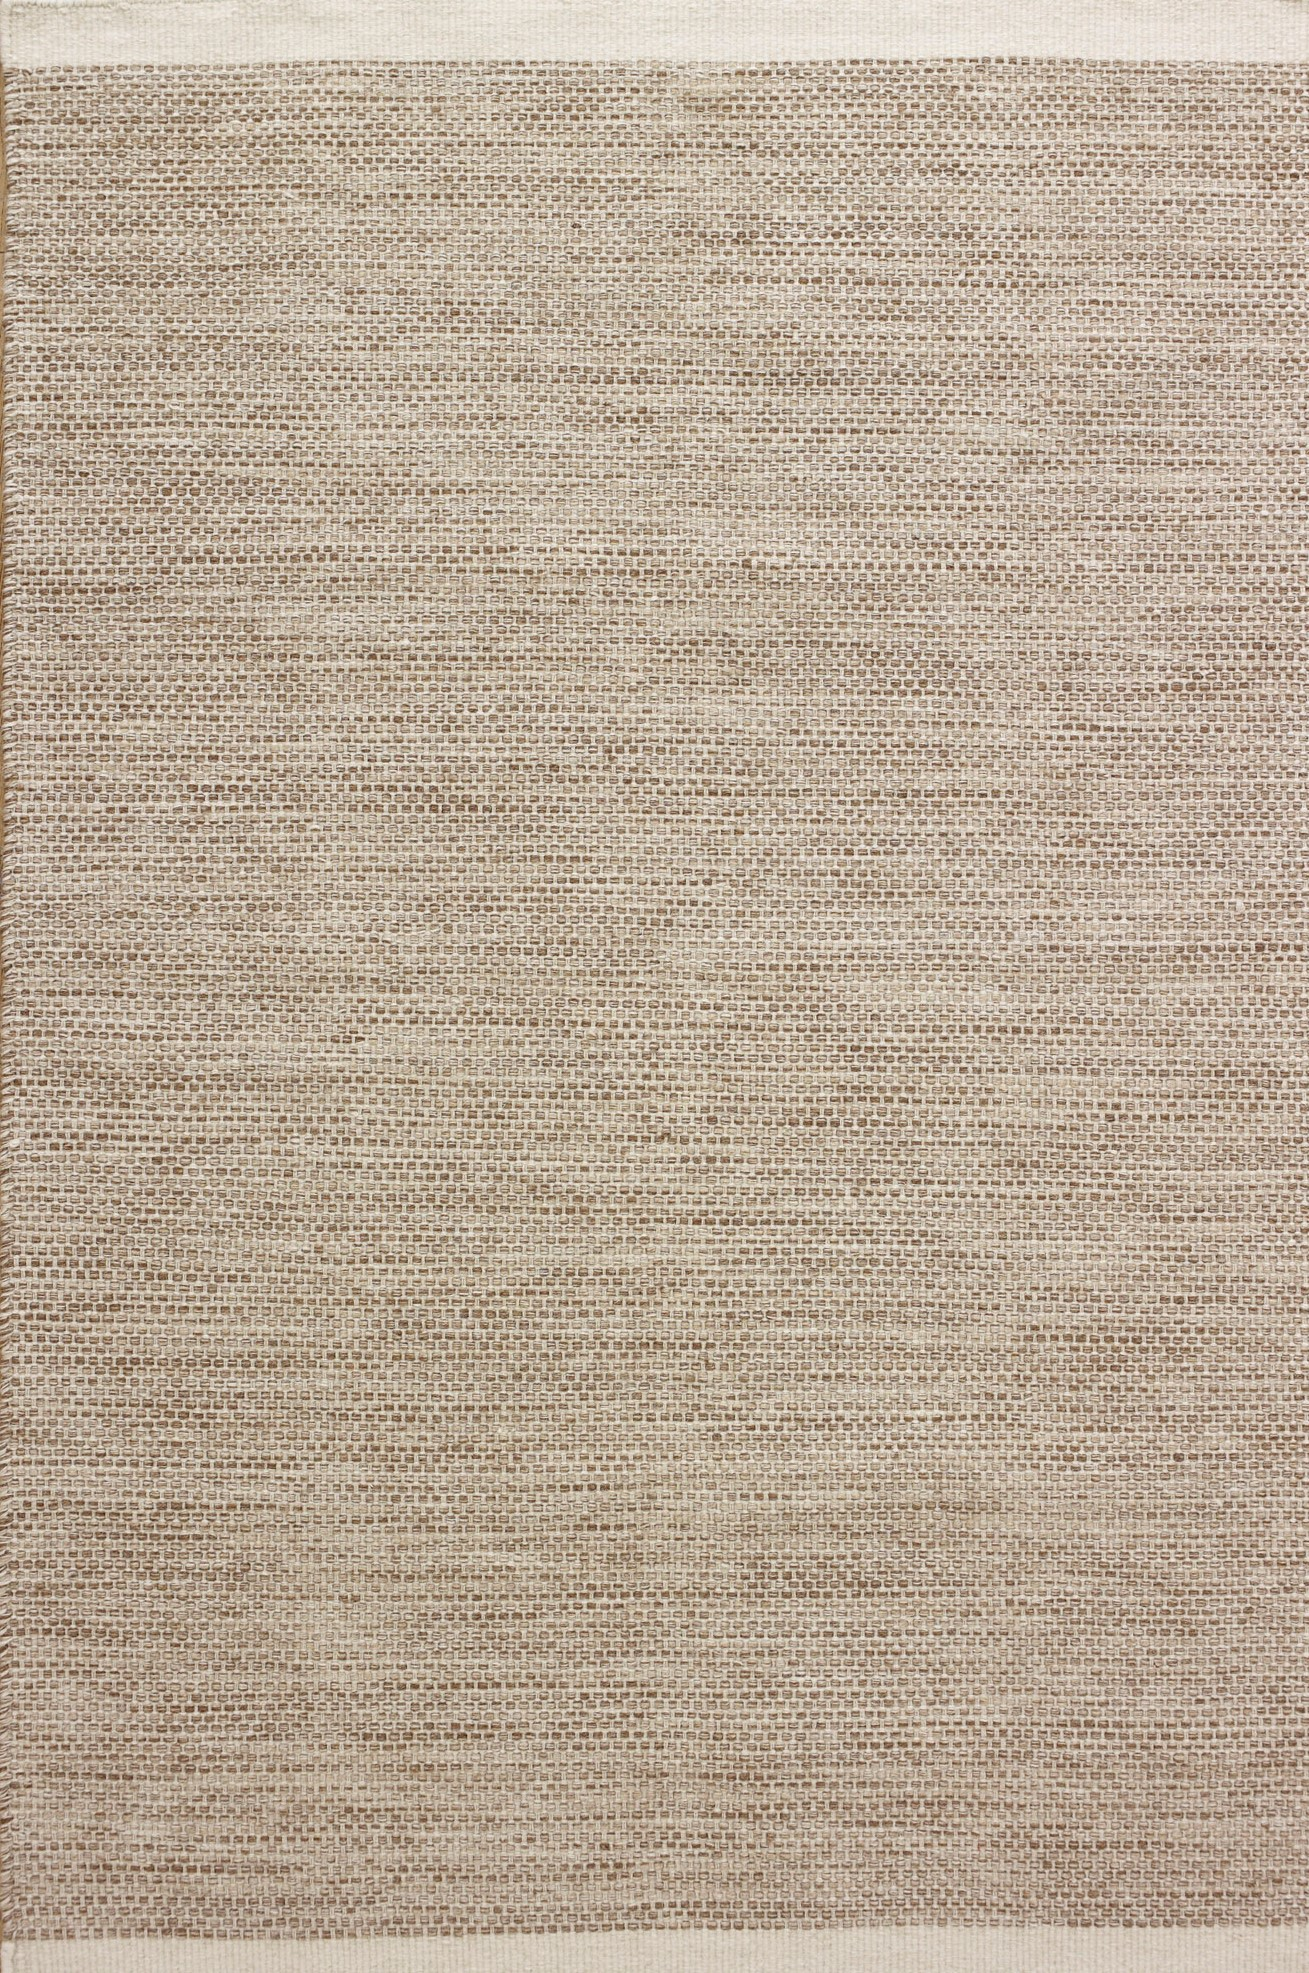 Rep Hand-Woven Flatweave Rug (Colour: Brown, Rug Size: 160 x 230)